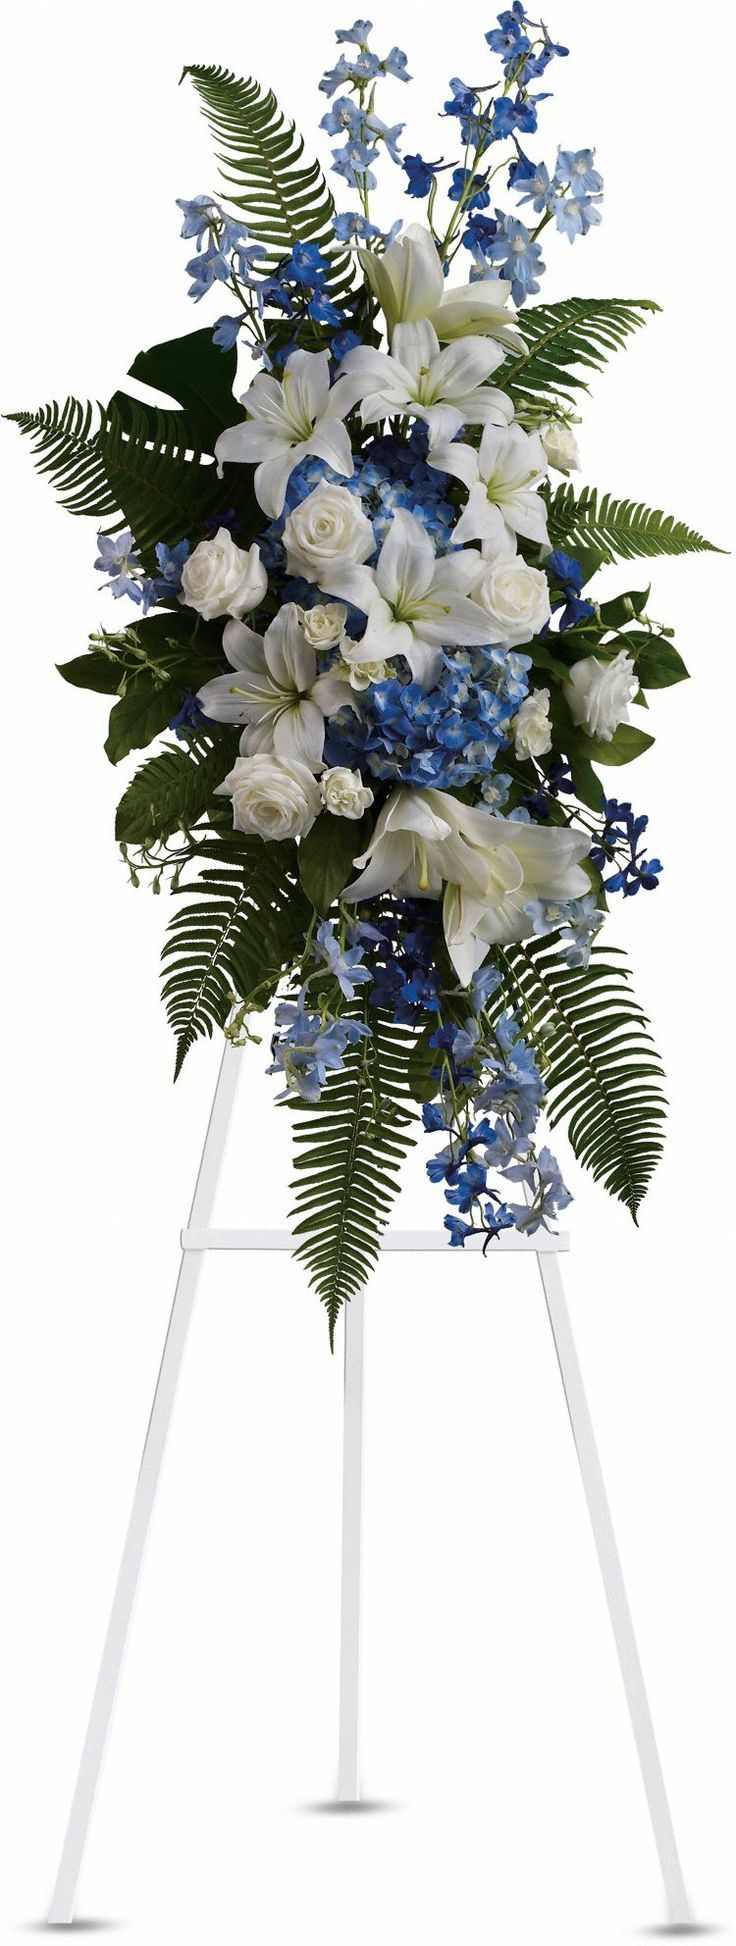 88 best flowers funeral images on pinterest funeral flowers beautiful funeral arrangements ideas easy to make it izmirmasajfo